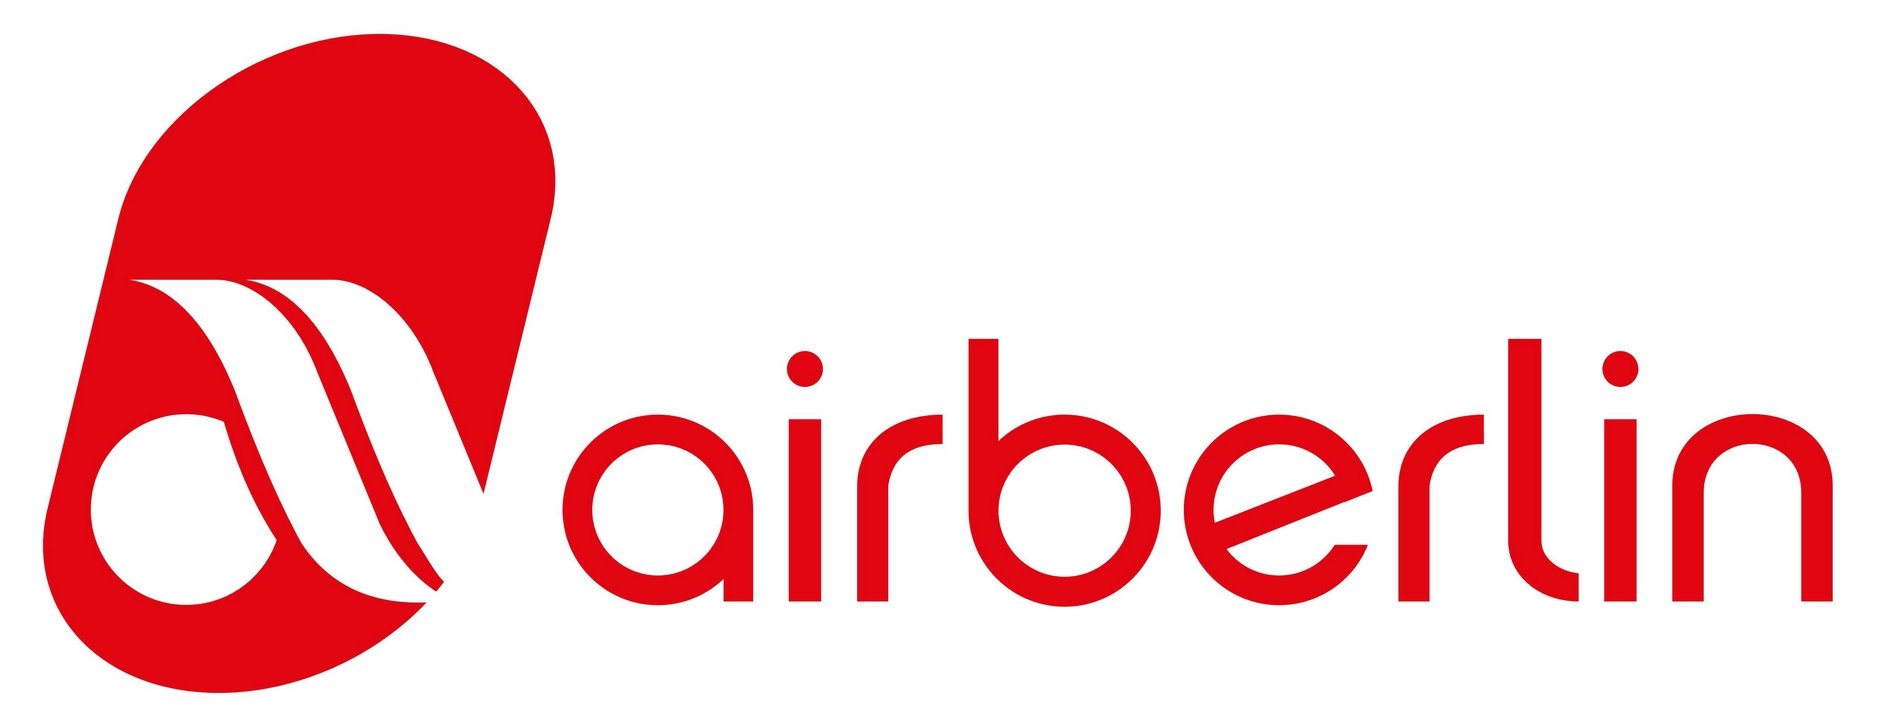 airberlin Logo Vector EPS Free Download, Logo, Icons, Brand Emblems